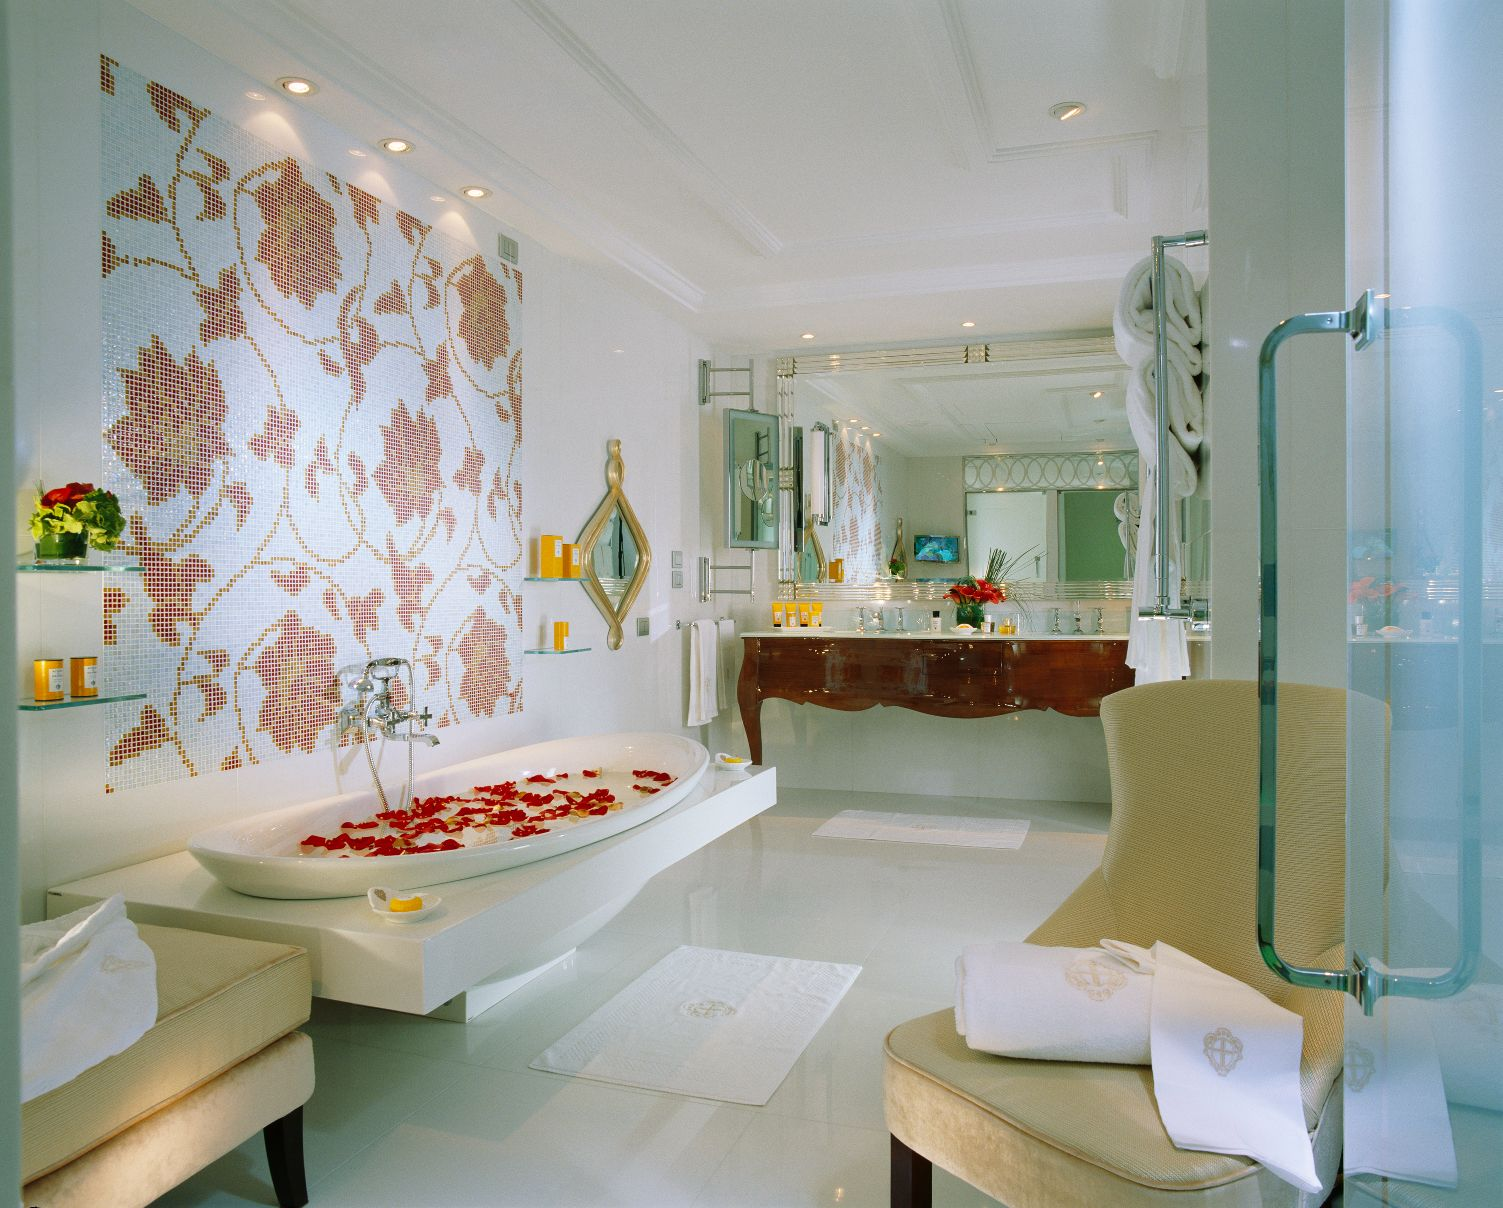 An image of the bathroom inside of the Hotel Principe di Savoia in Milan.